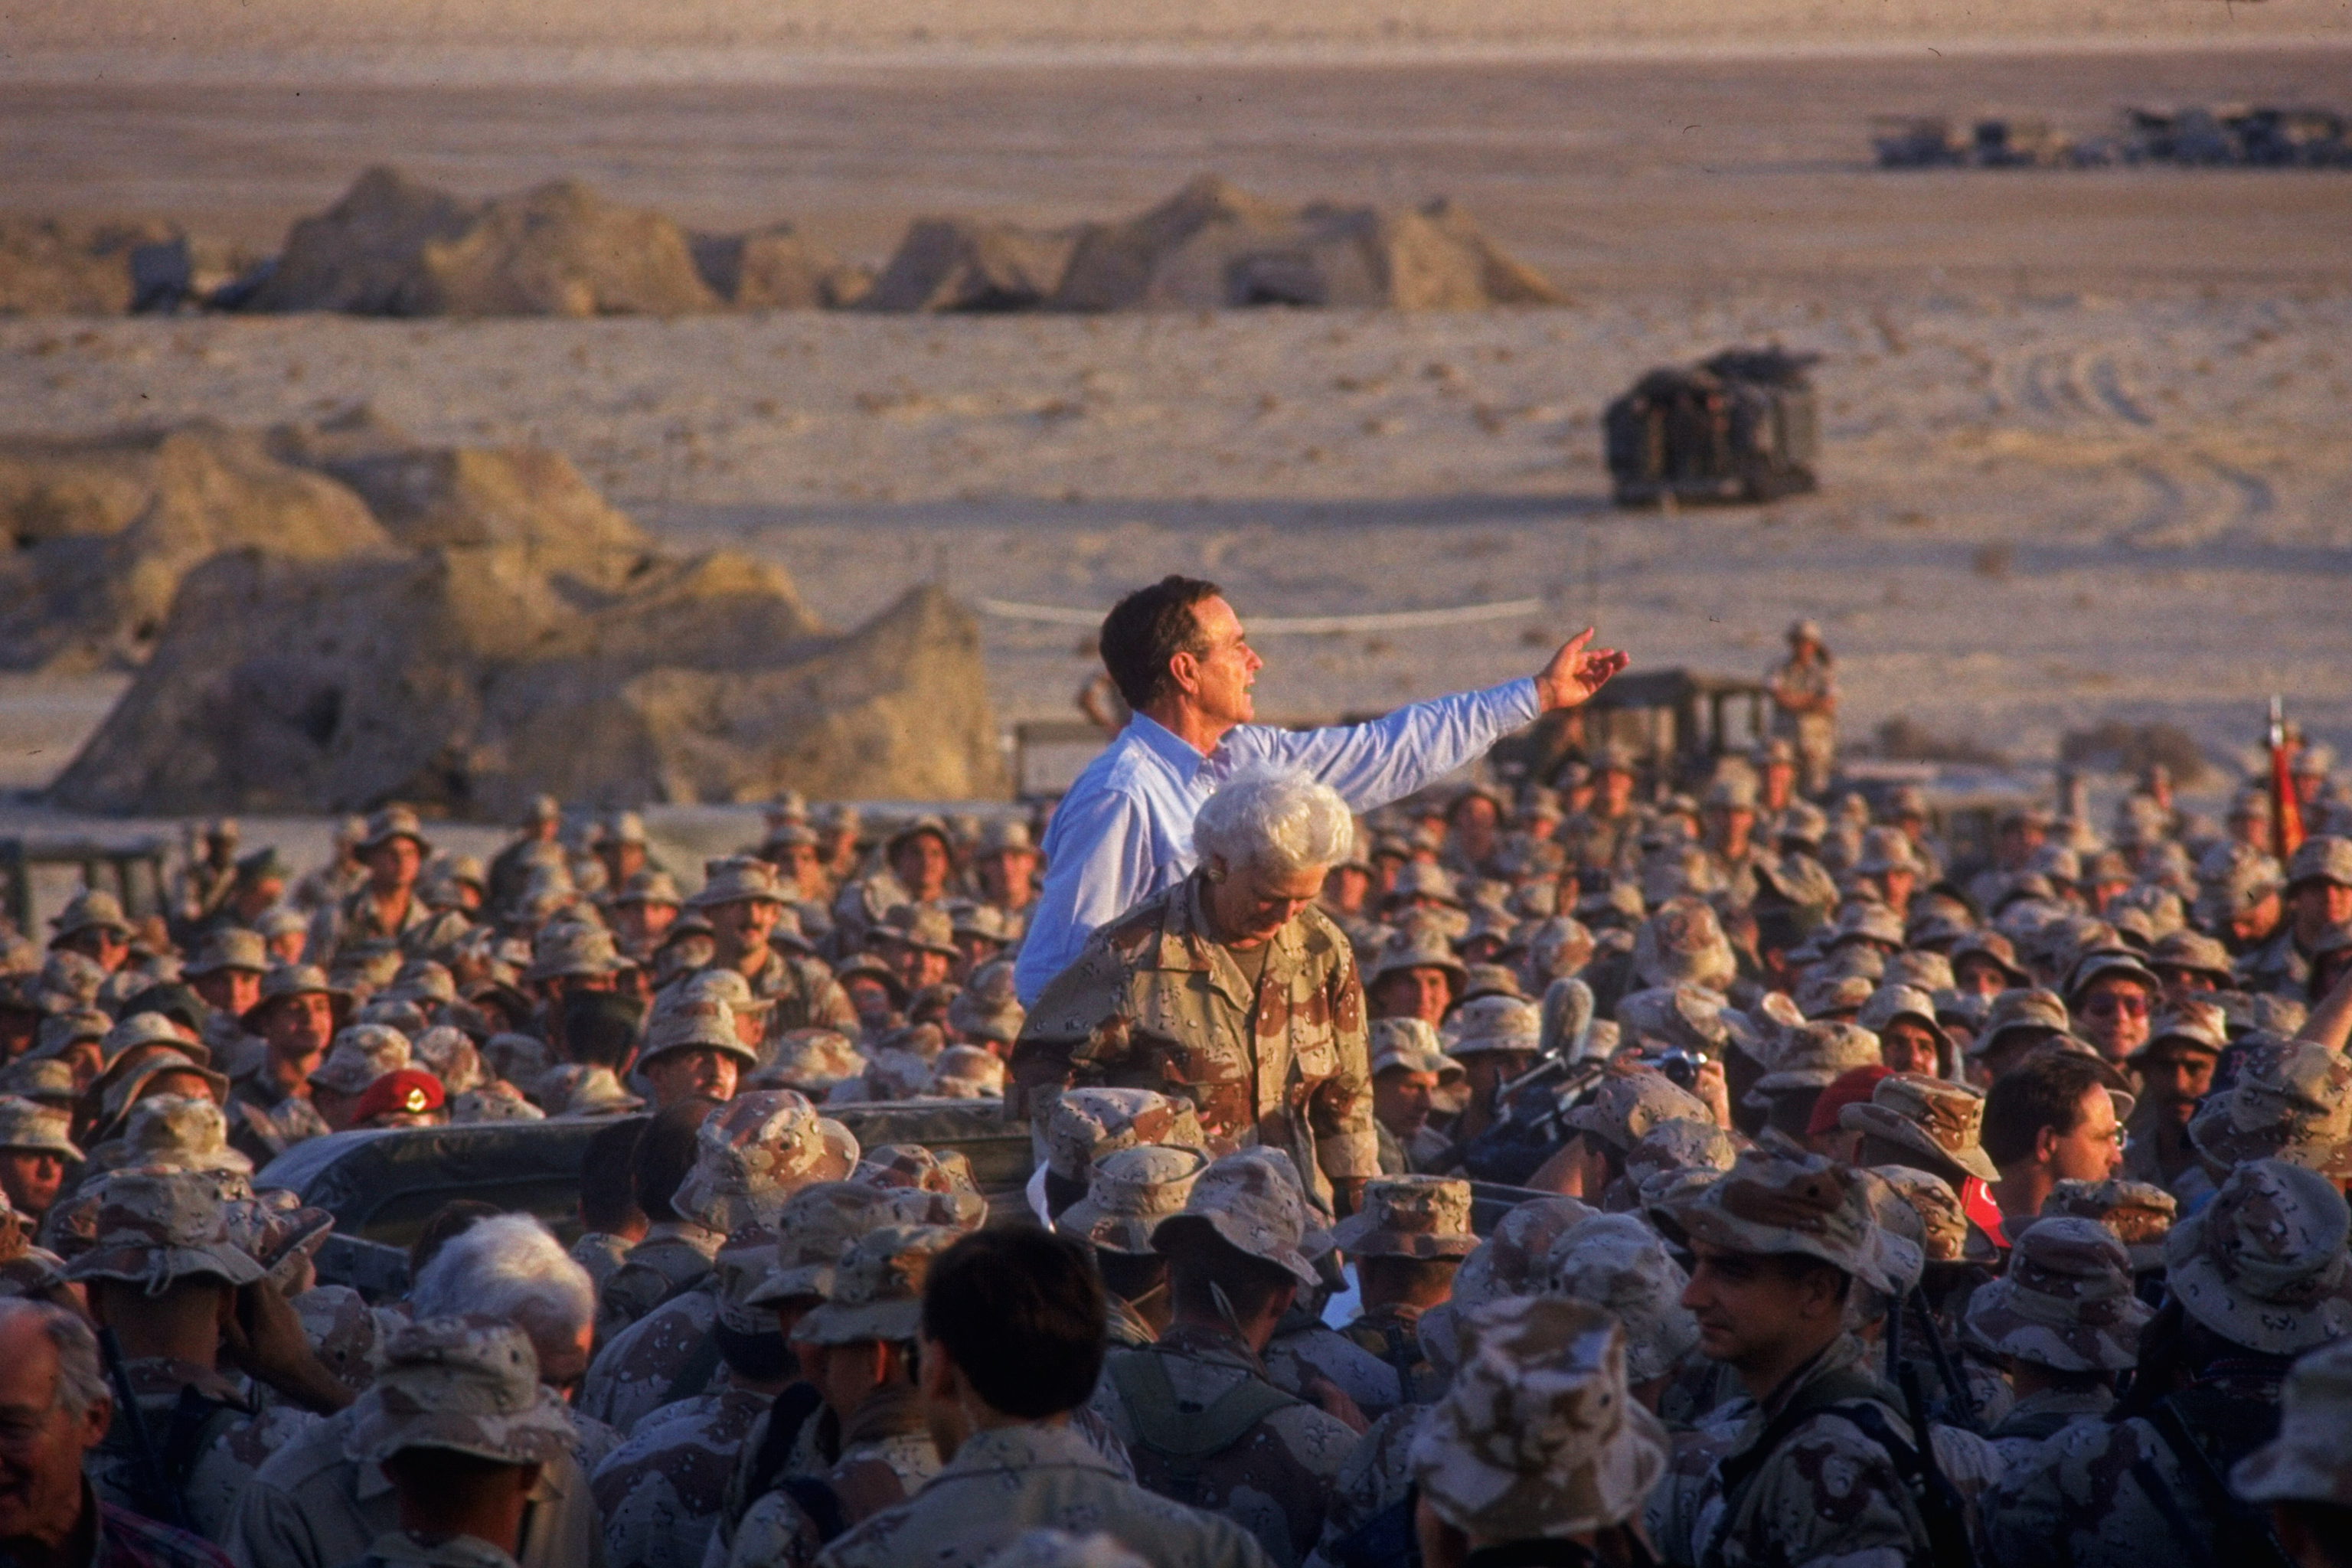 President George H.W. Bush and Barbara Bush poised above a crowd of First Marine Division Desert Command Post marines on thanksgiving during the Gulf Crisis on November 22, 1990.